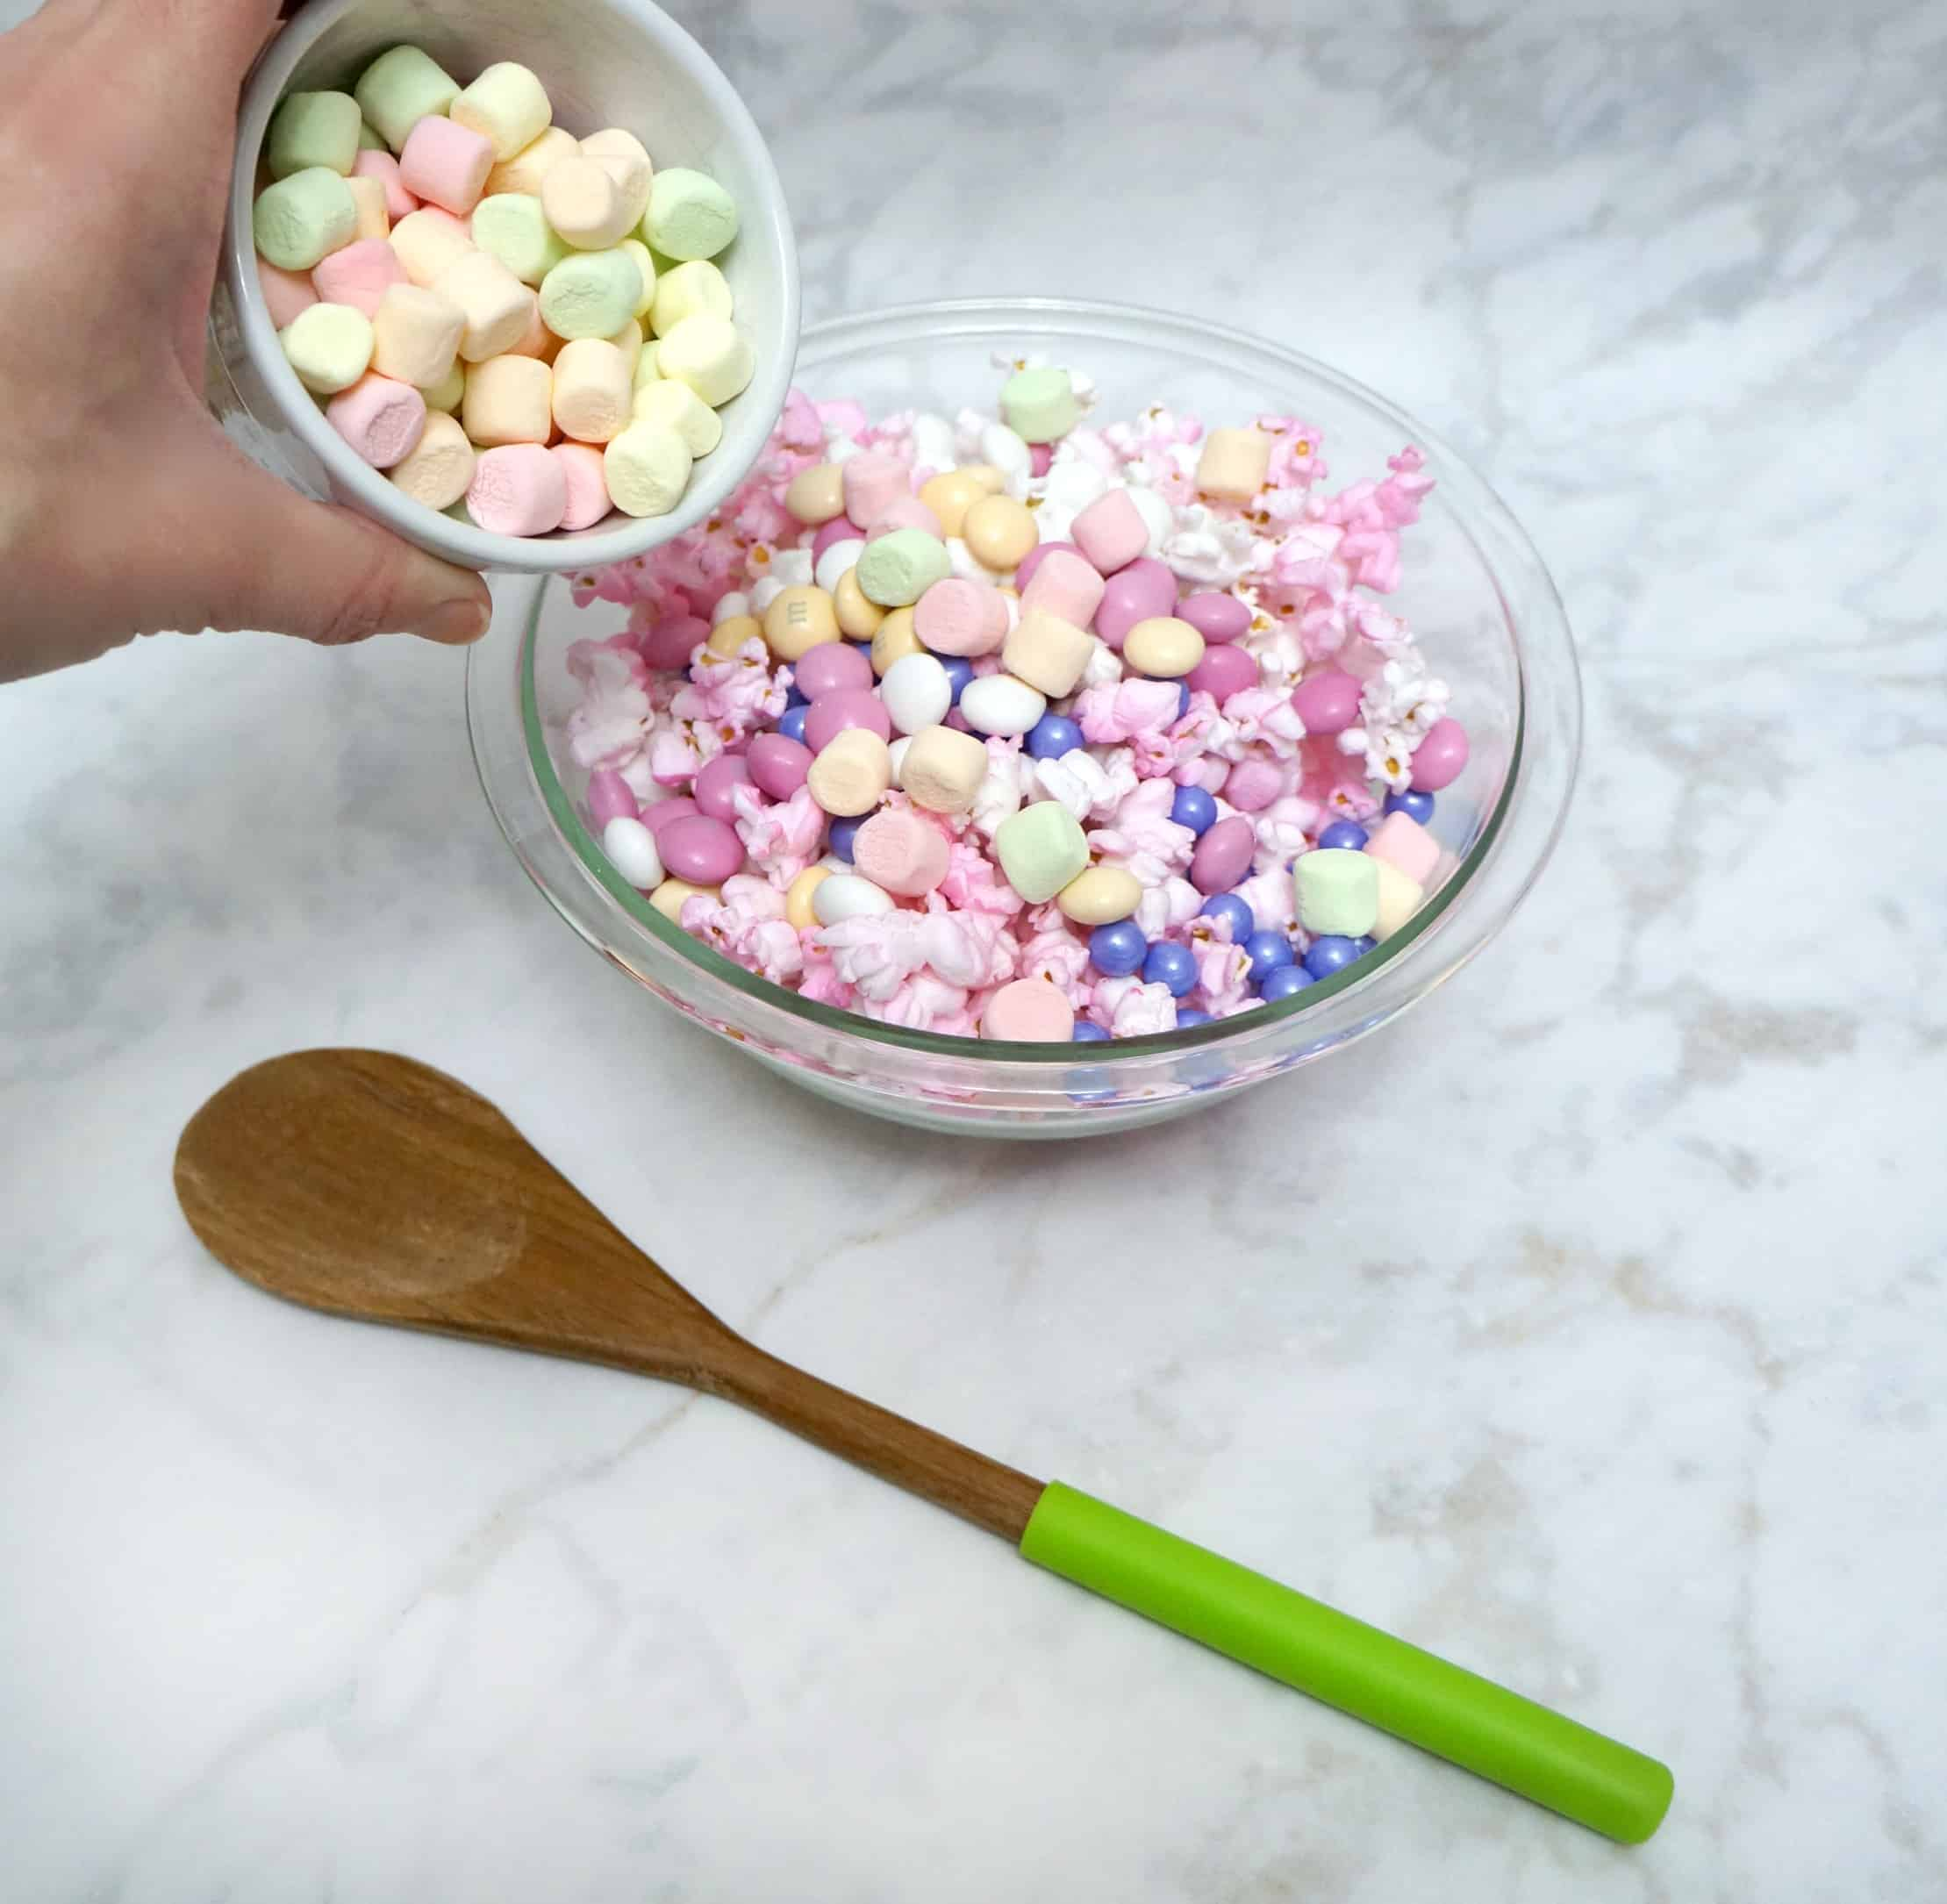 Mix up unicorn popcorn